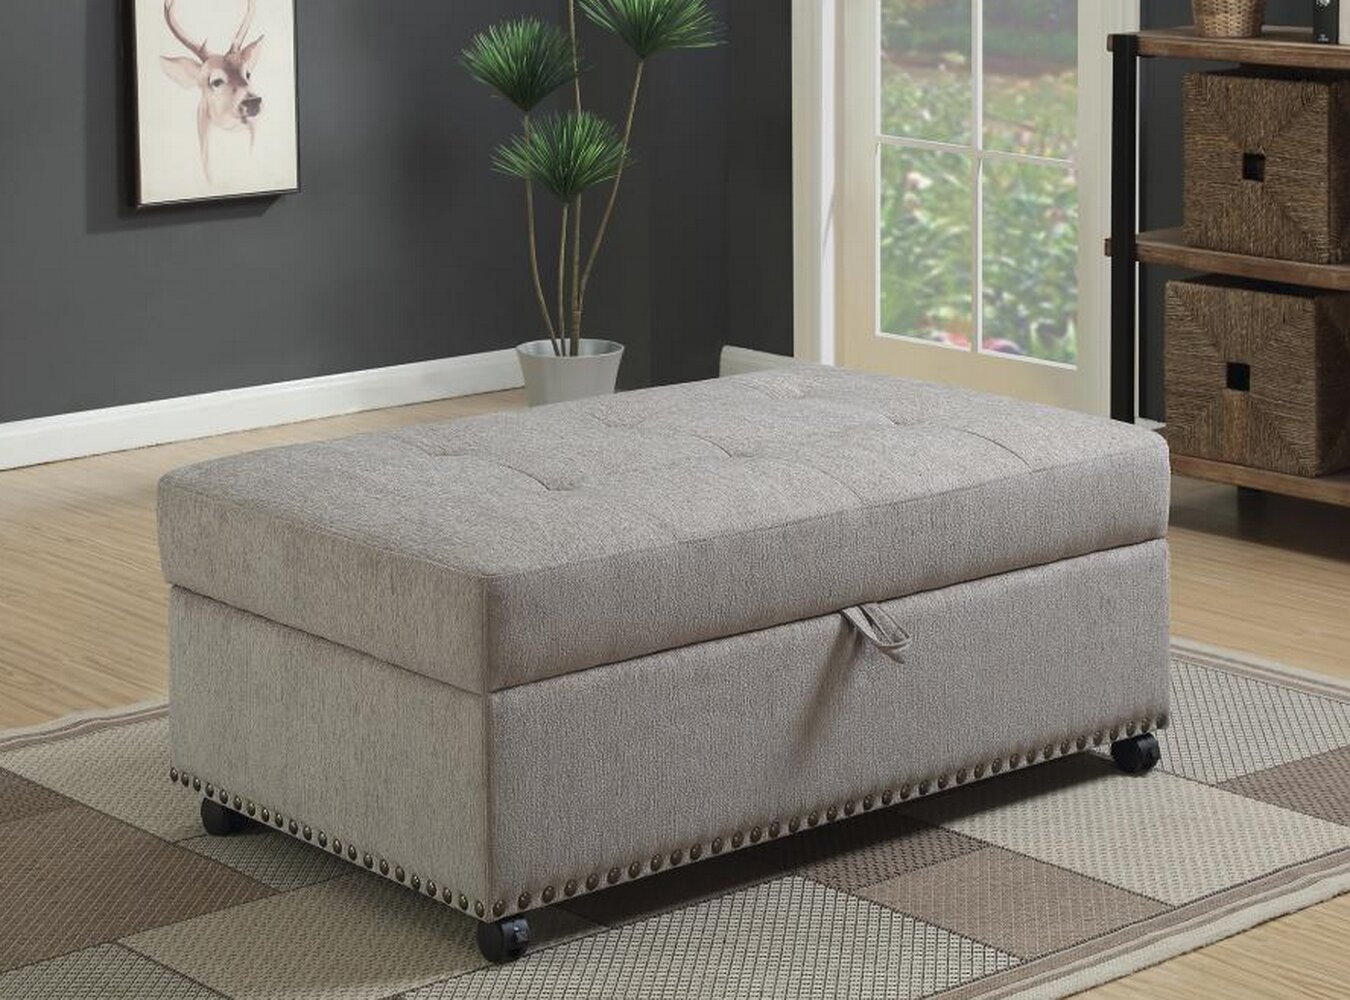 Wondrous Lelia Sleeper Storage Ottoman Ocoug Best Dining Table And Chair Ideas Images Ocougorg